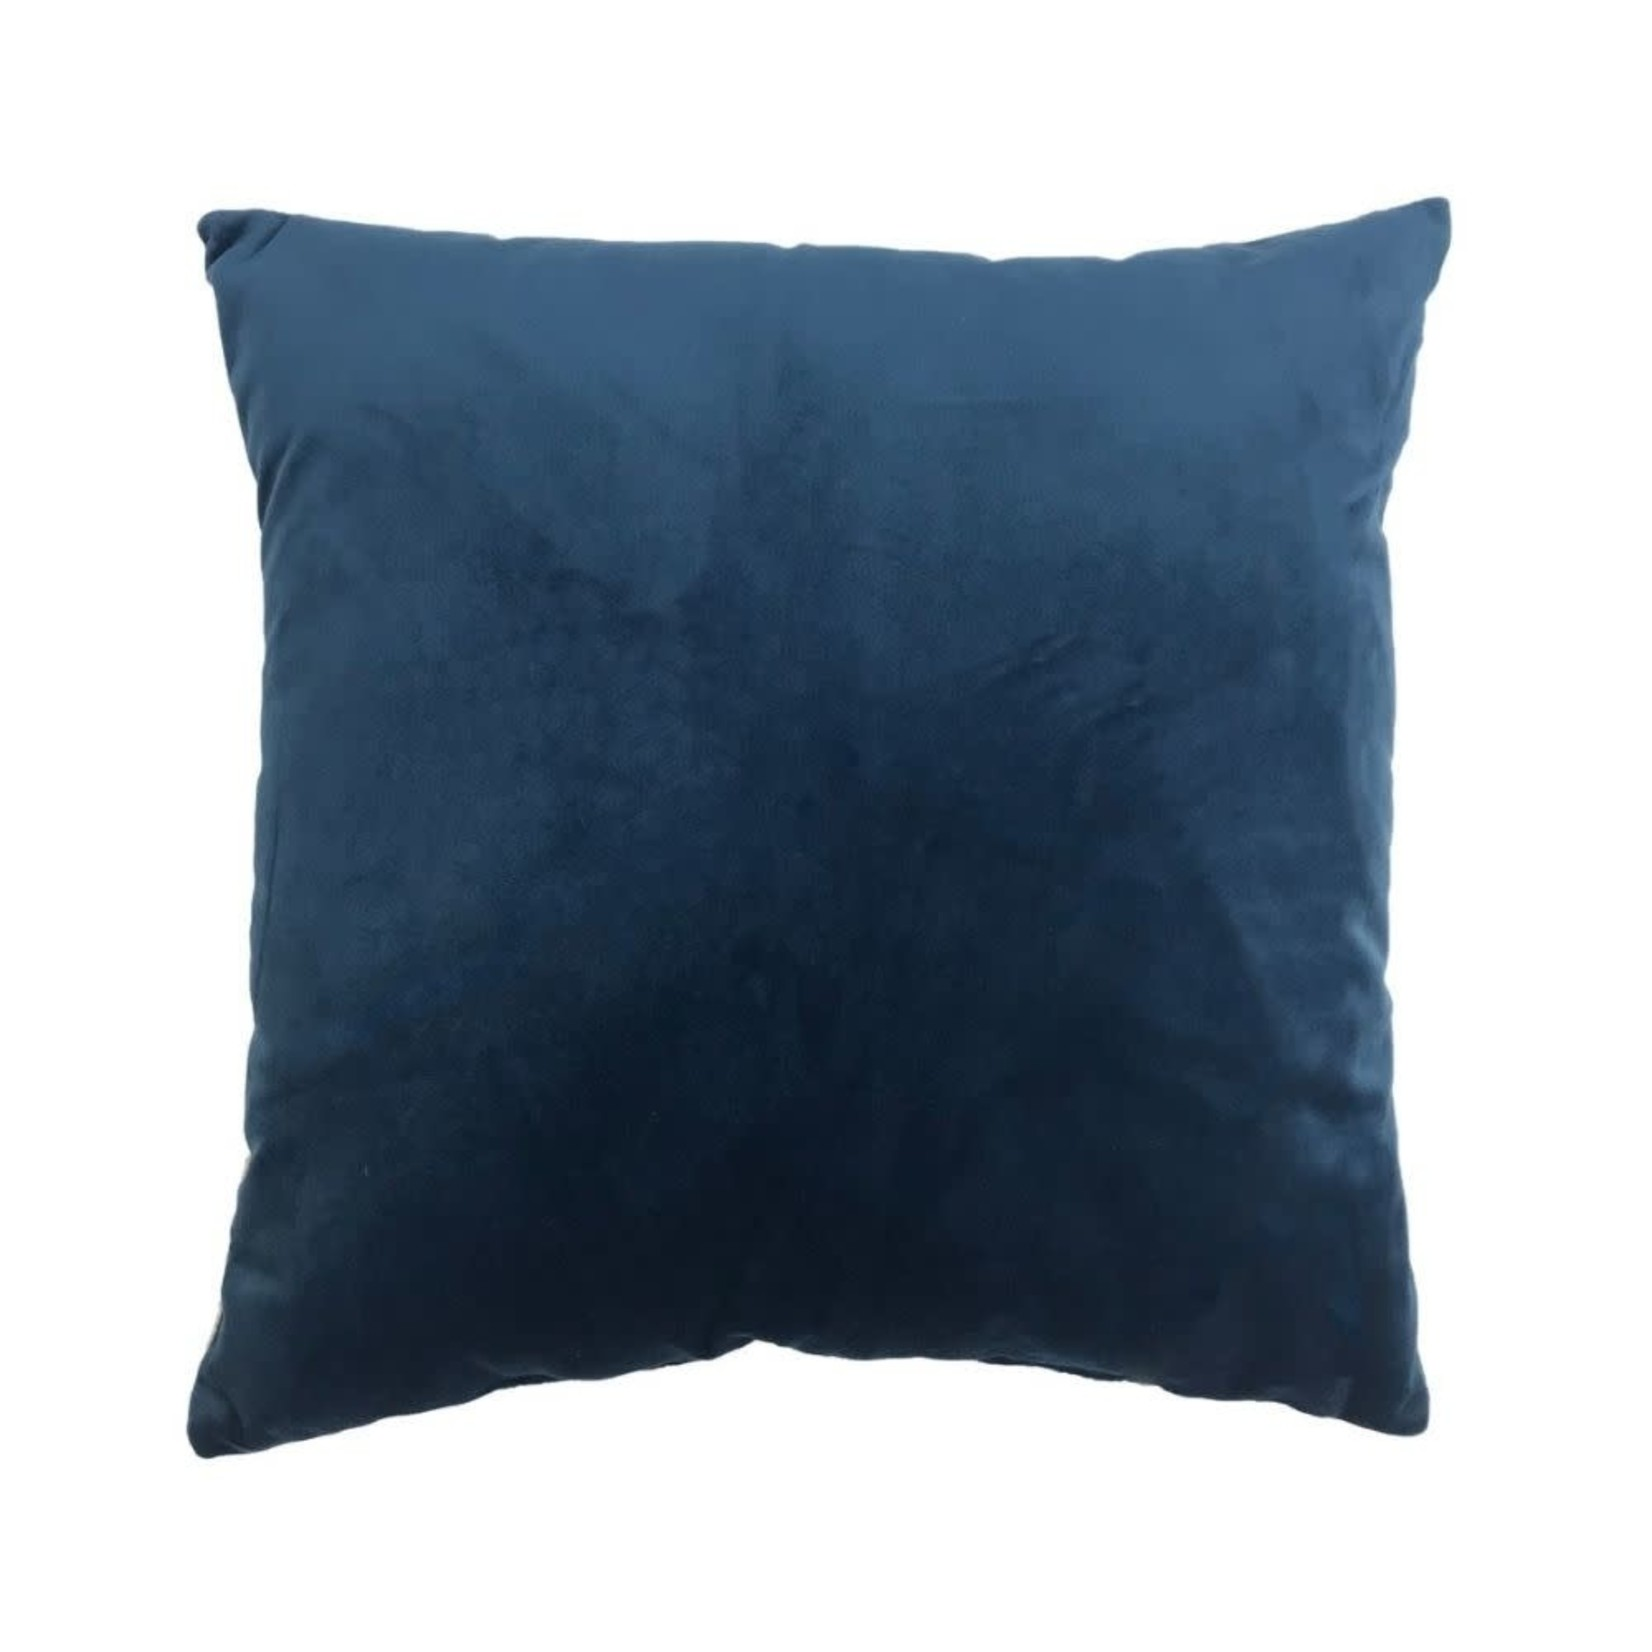 Blue Velvet Pillow